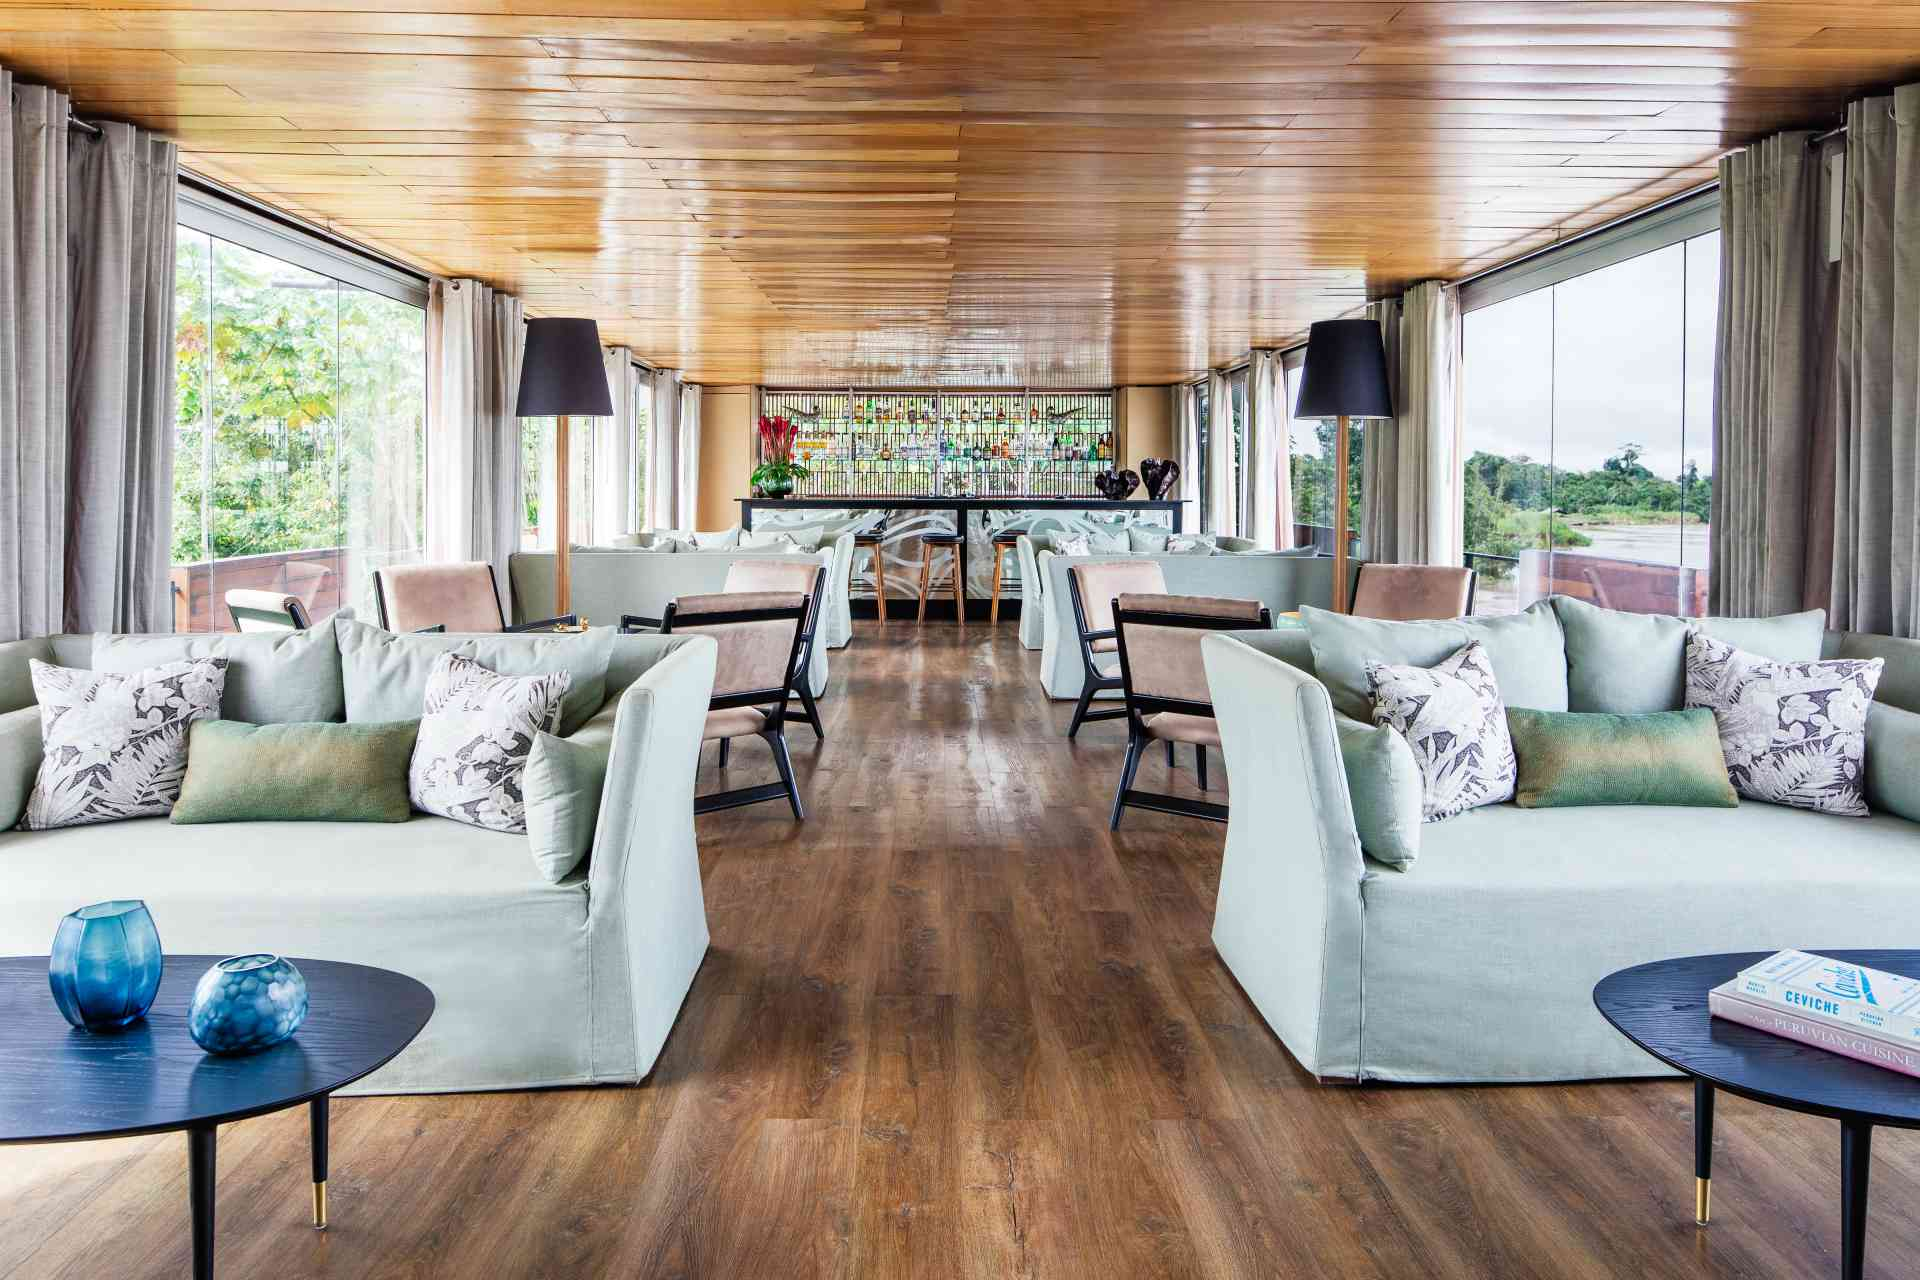 Aria Amazon lounge & bar, Peru by Aqua Expeditions